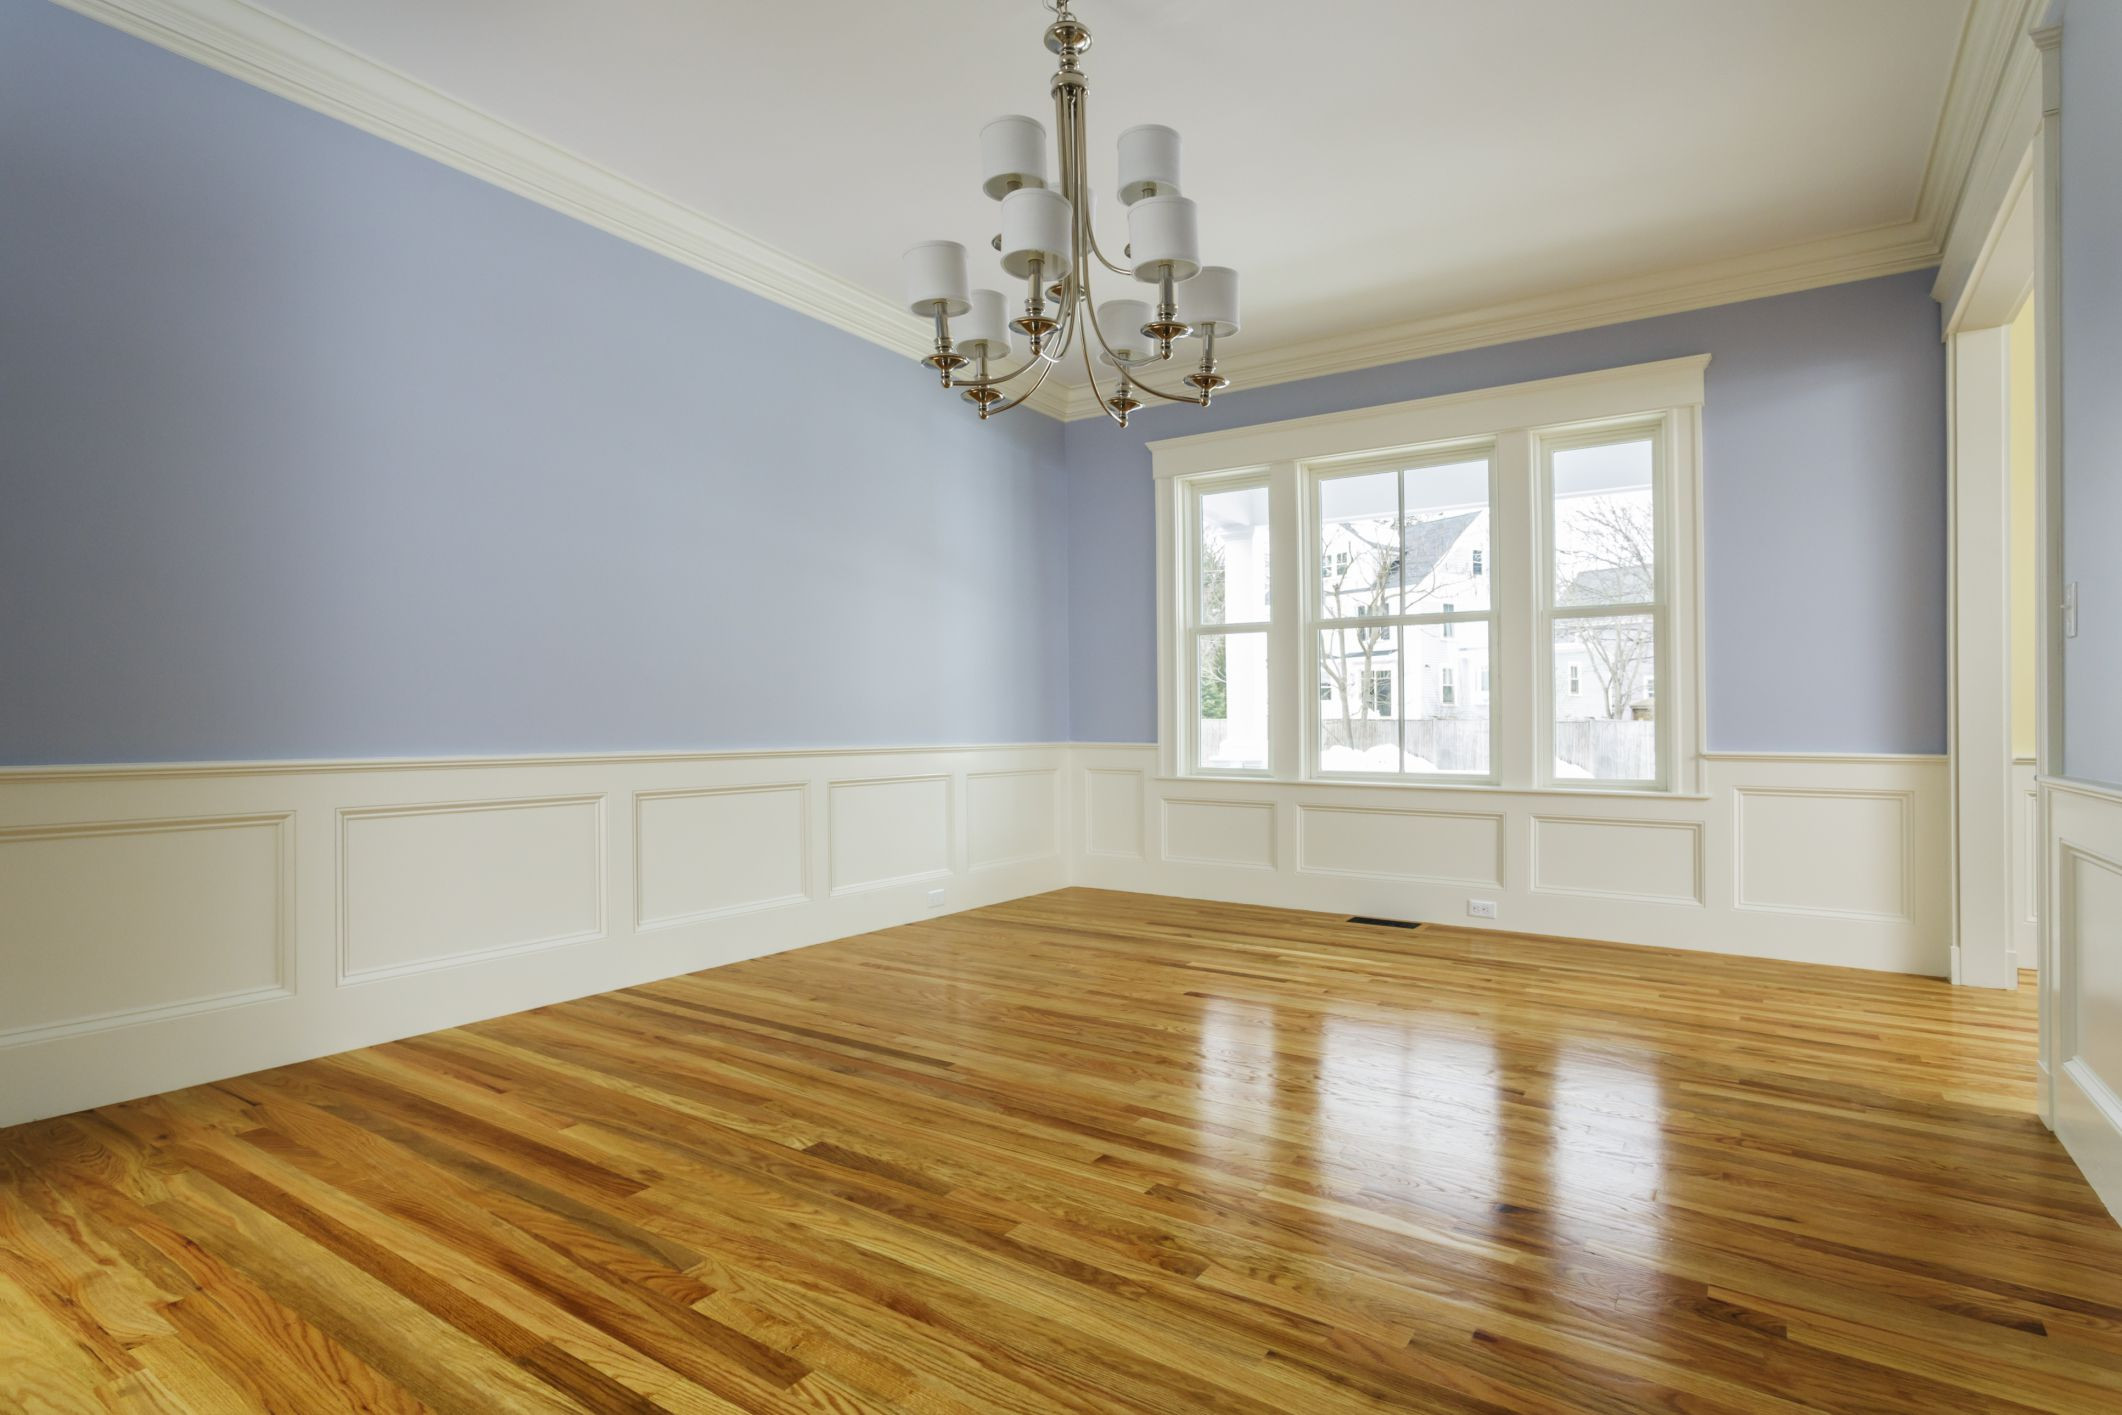 hardwood flooring installation companies of the cost to refinish hardwood floors pertaining to 168686572 highres 56a2fd773df78cf7727b6cb3